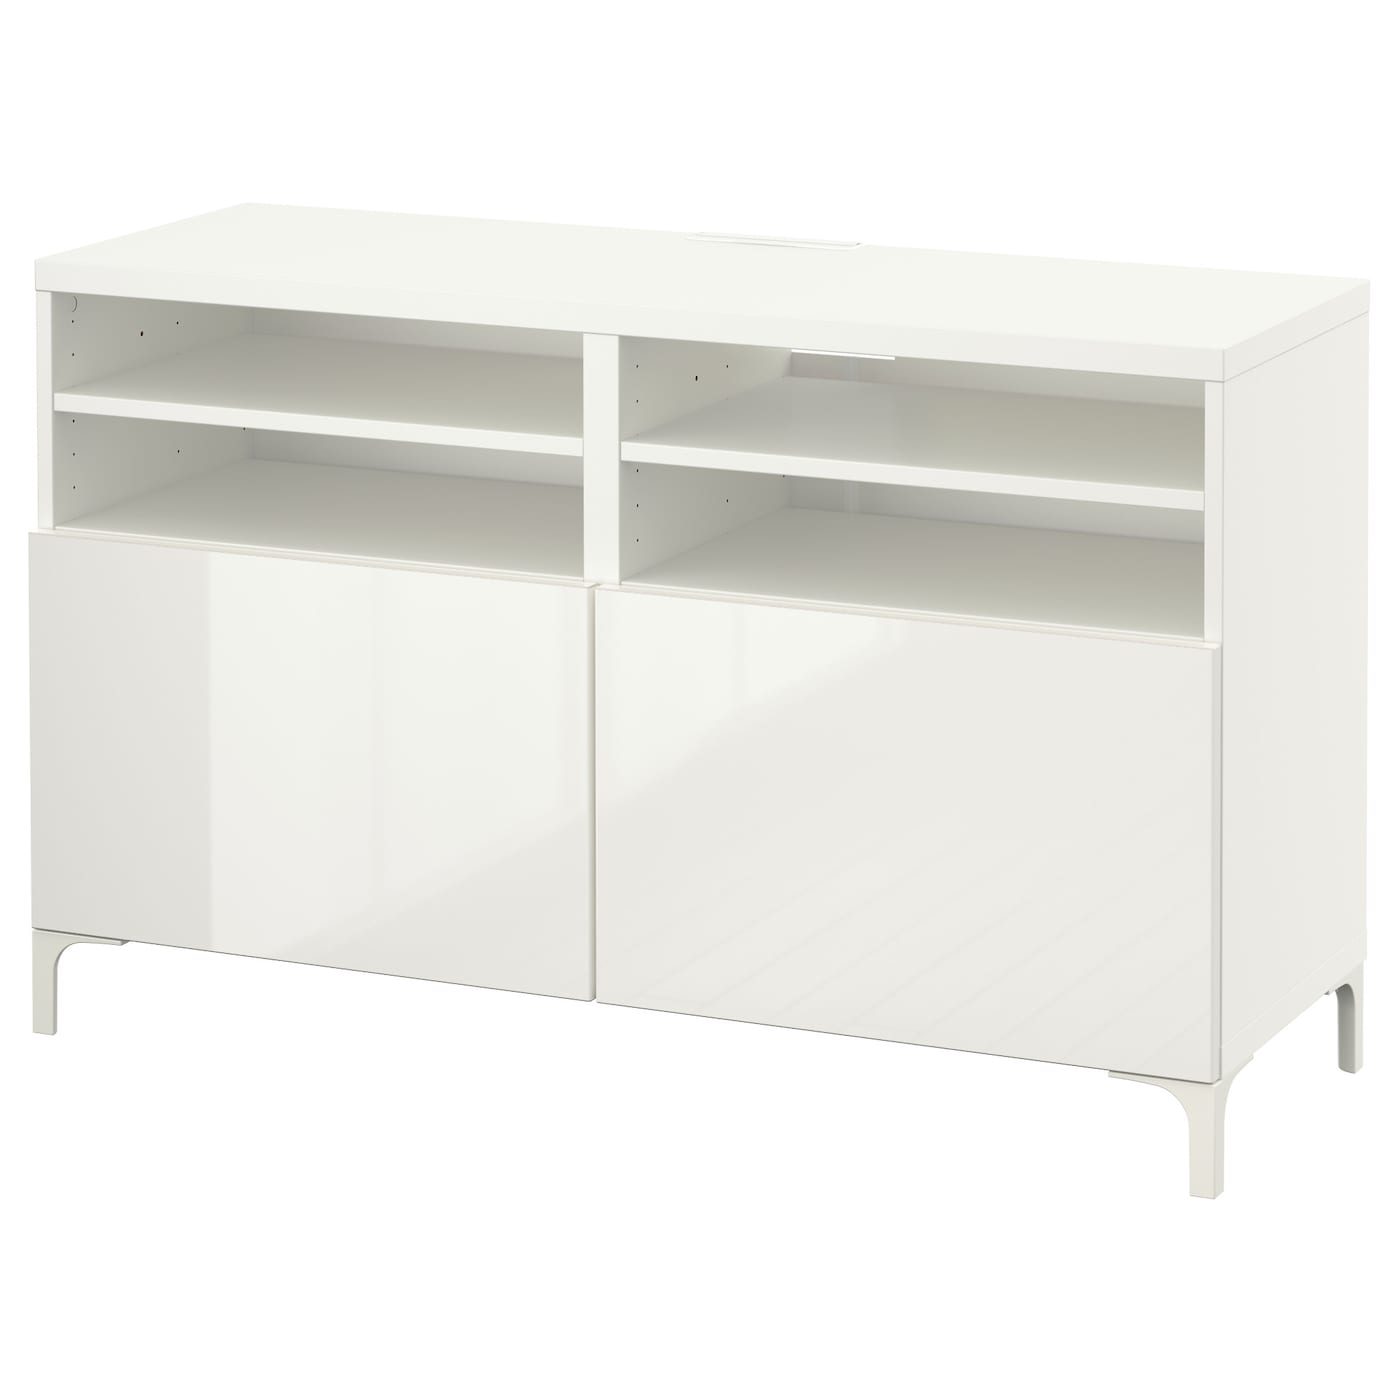 Tv stands tv units ikea for Sideboard 95 cm